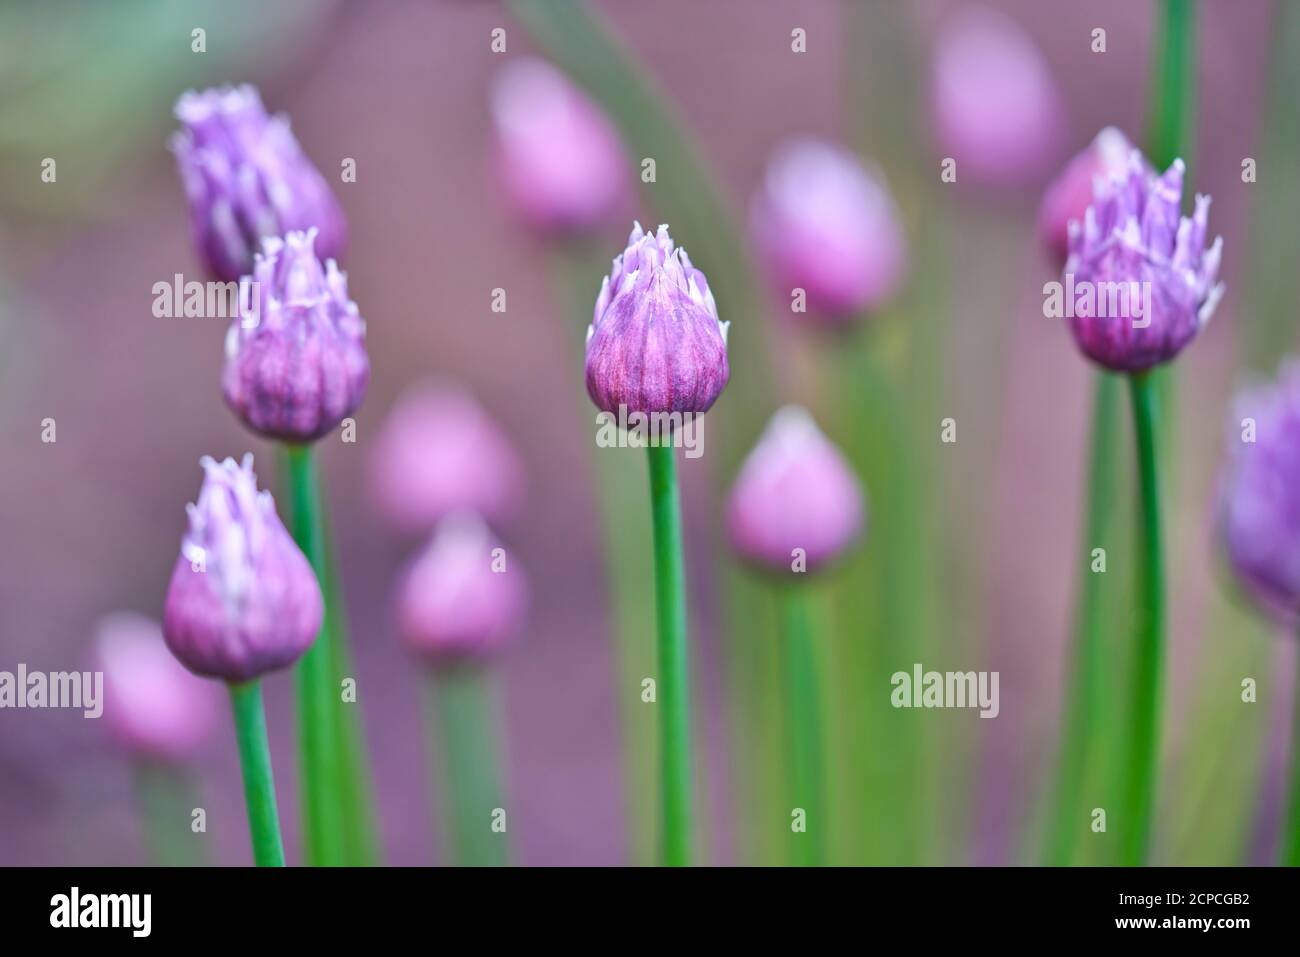 Purple pink flowers of perennial chives herb plant in the garden Stock Photo